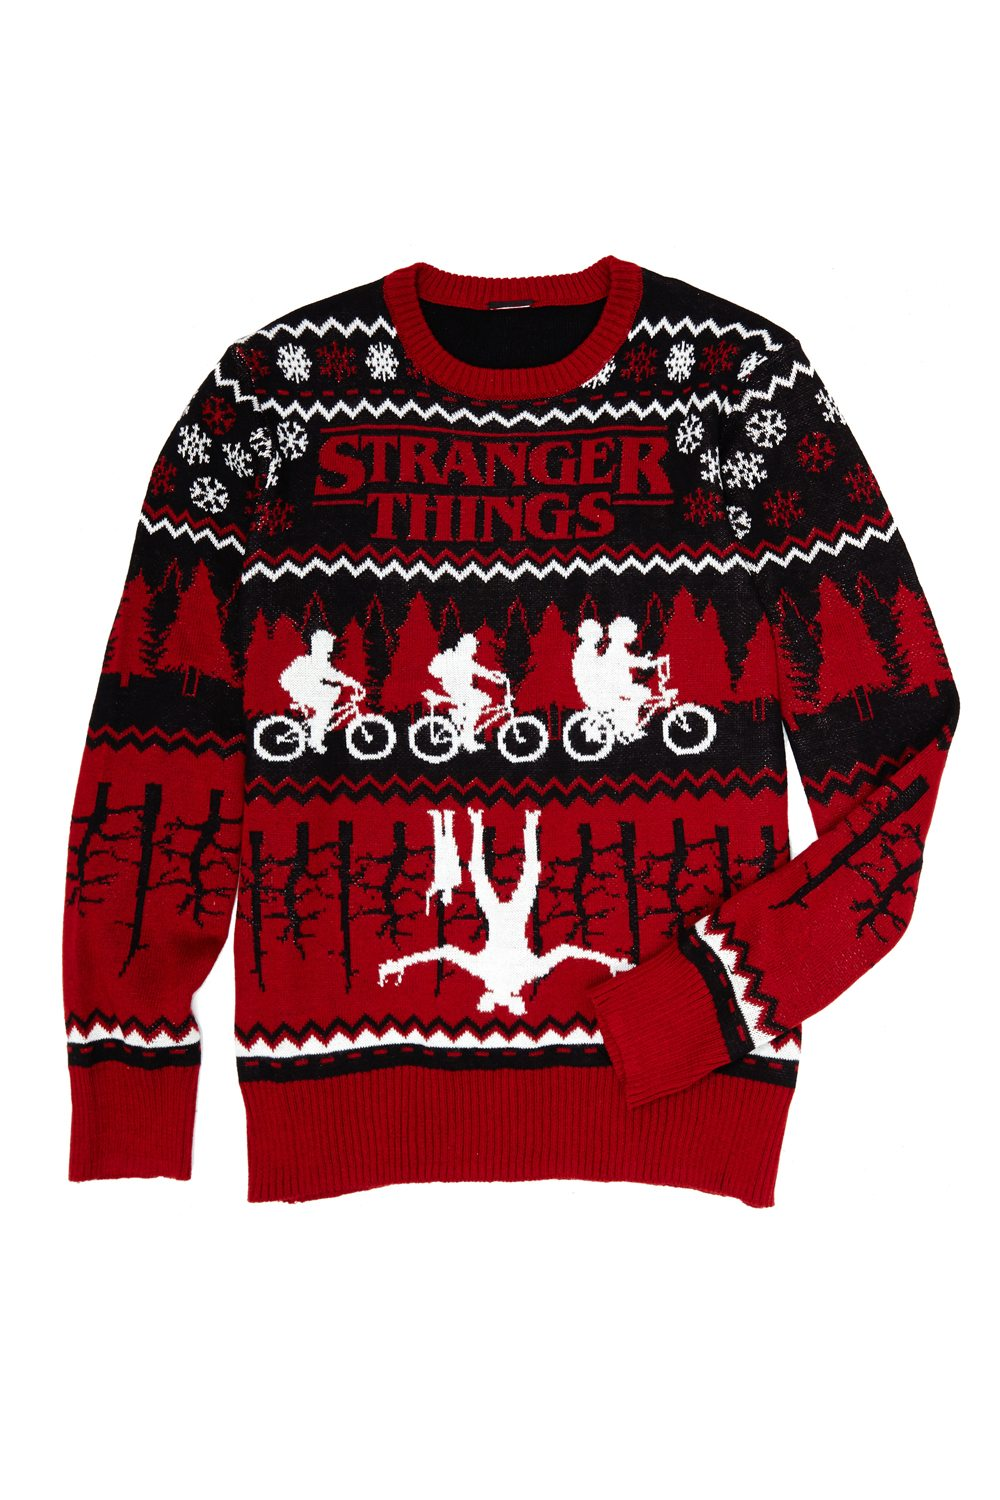 Stranger Things Holiday Sweater - New Stranger Things Season 2 Merchandise on the Way as BoxLunch Teams with Netflix